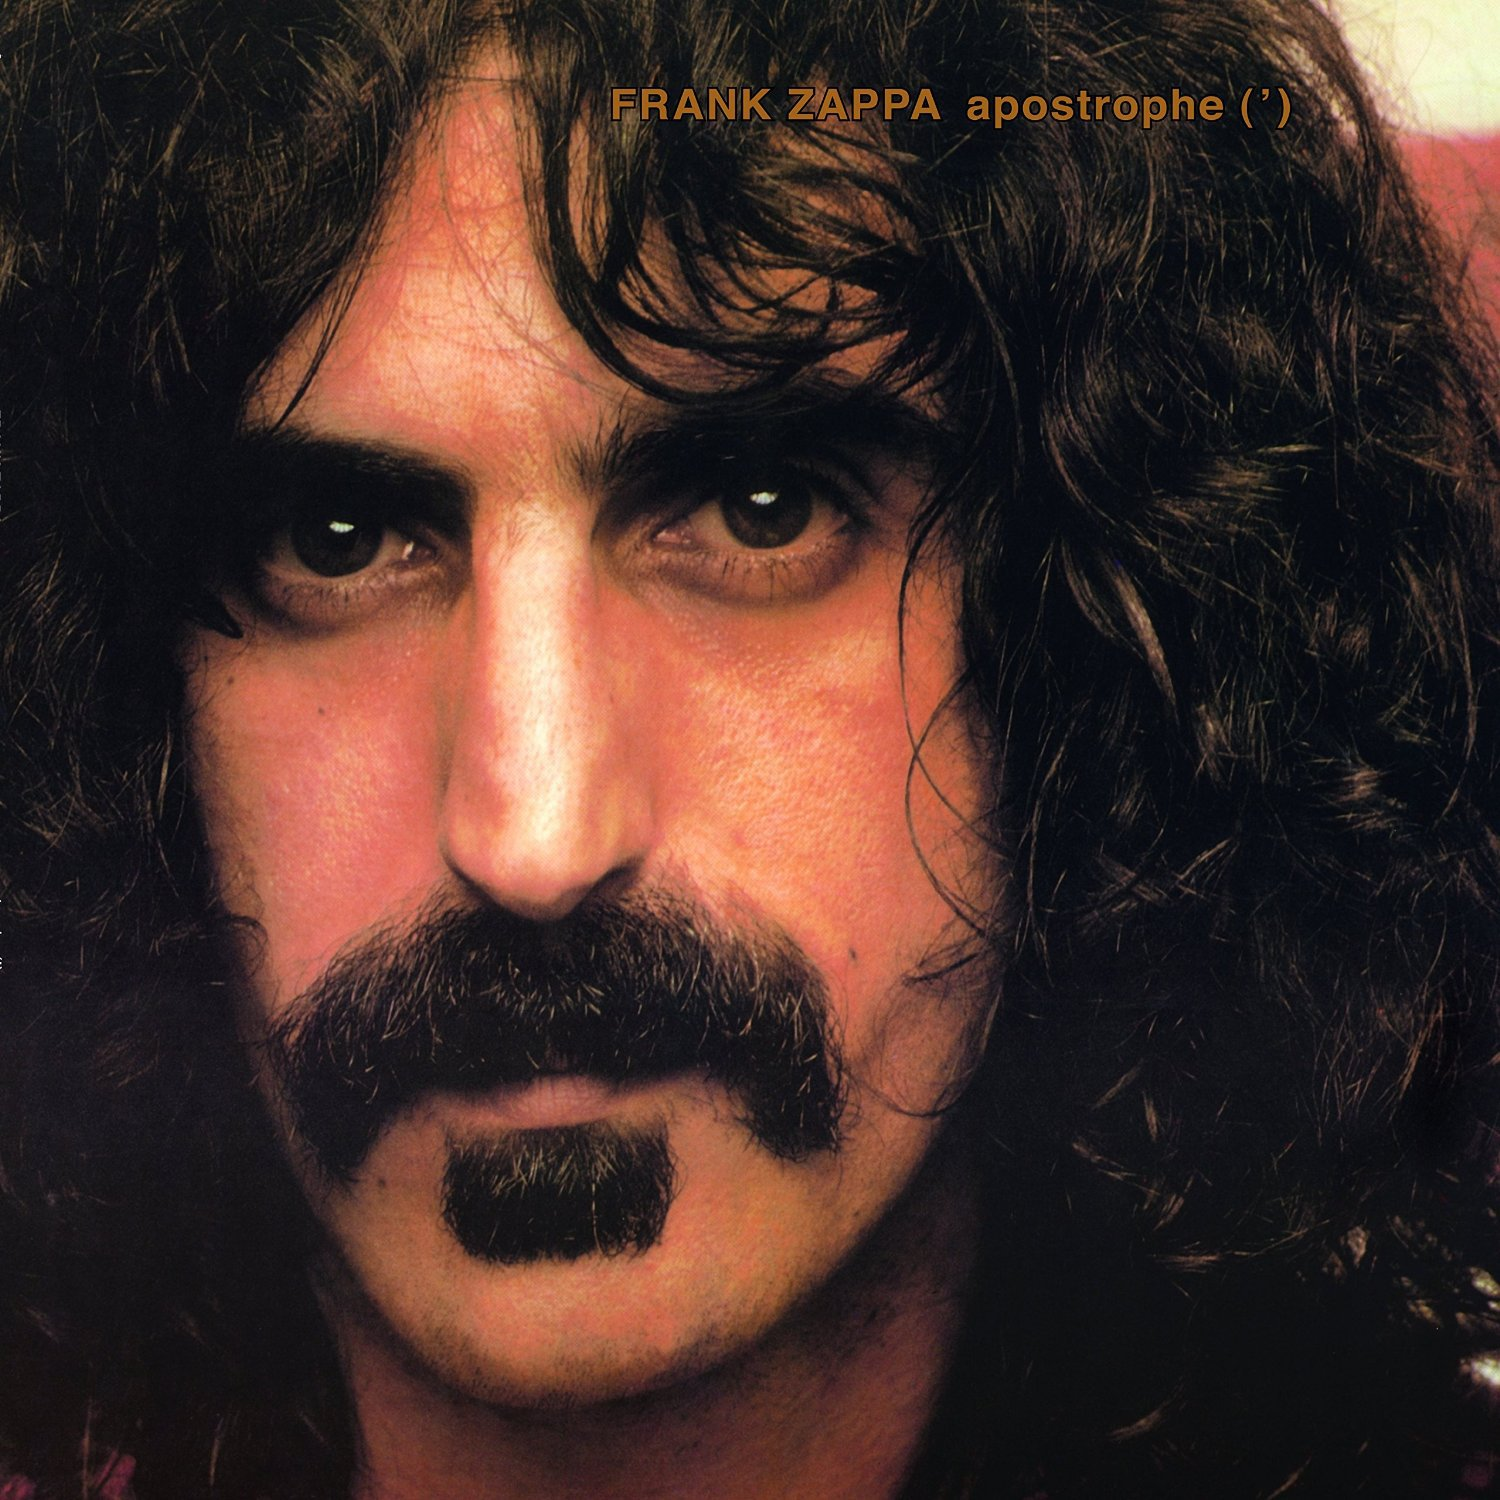 Image result for frank zappa apostrophe